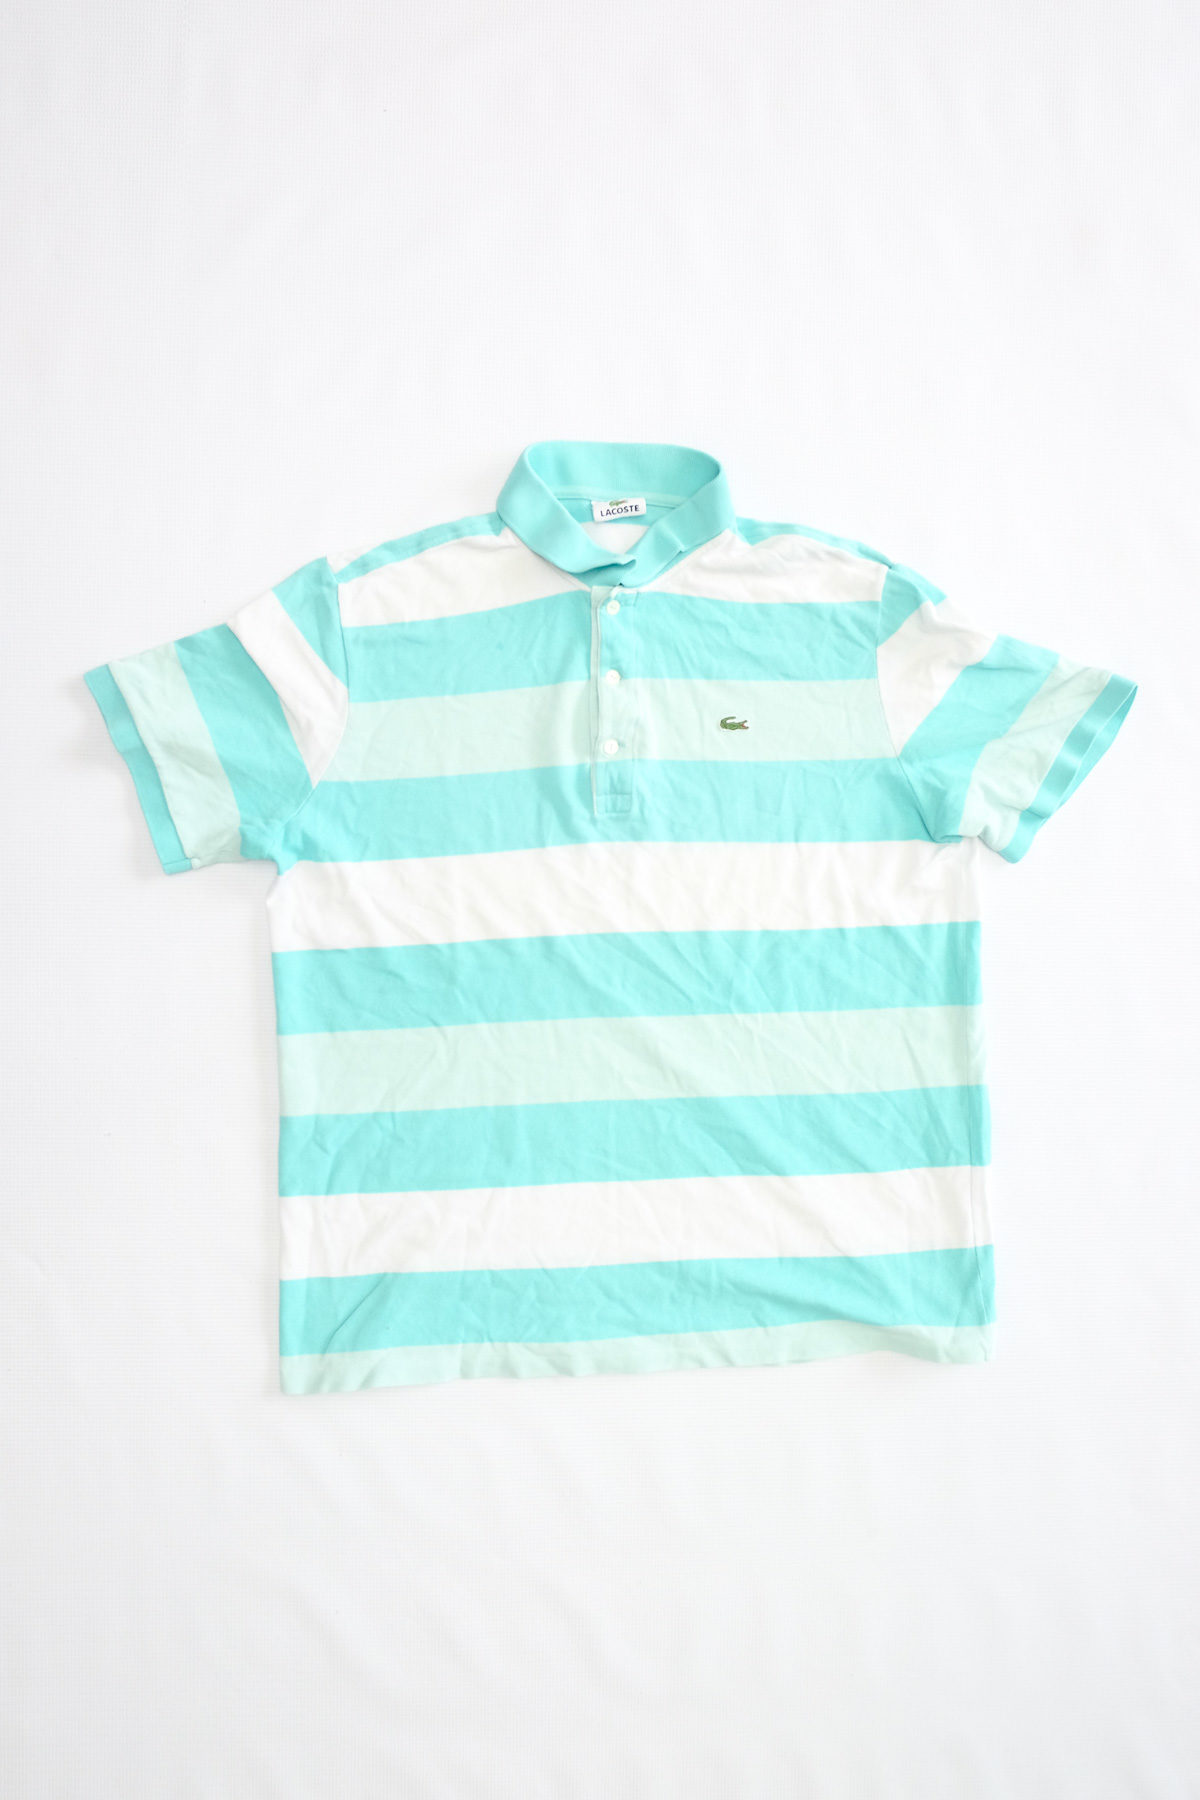 Lacoste POLO VINTAGE Righe